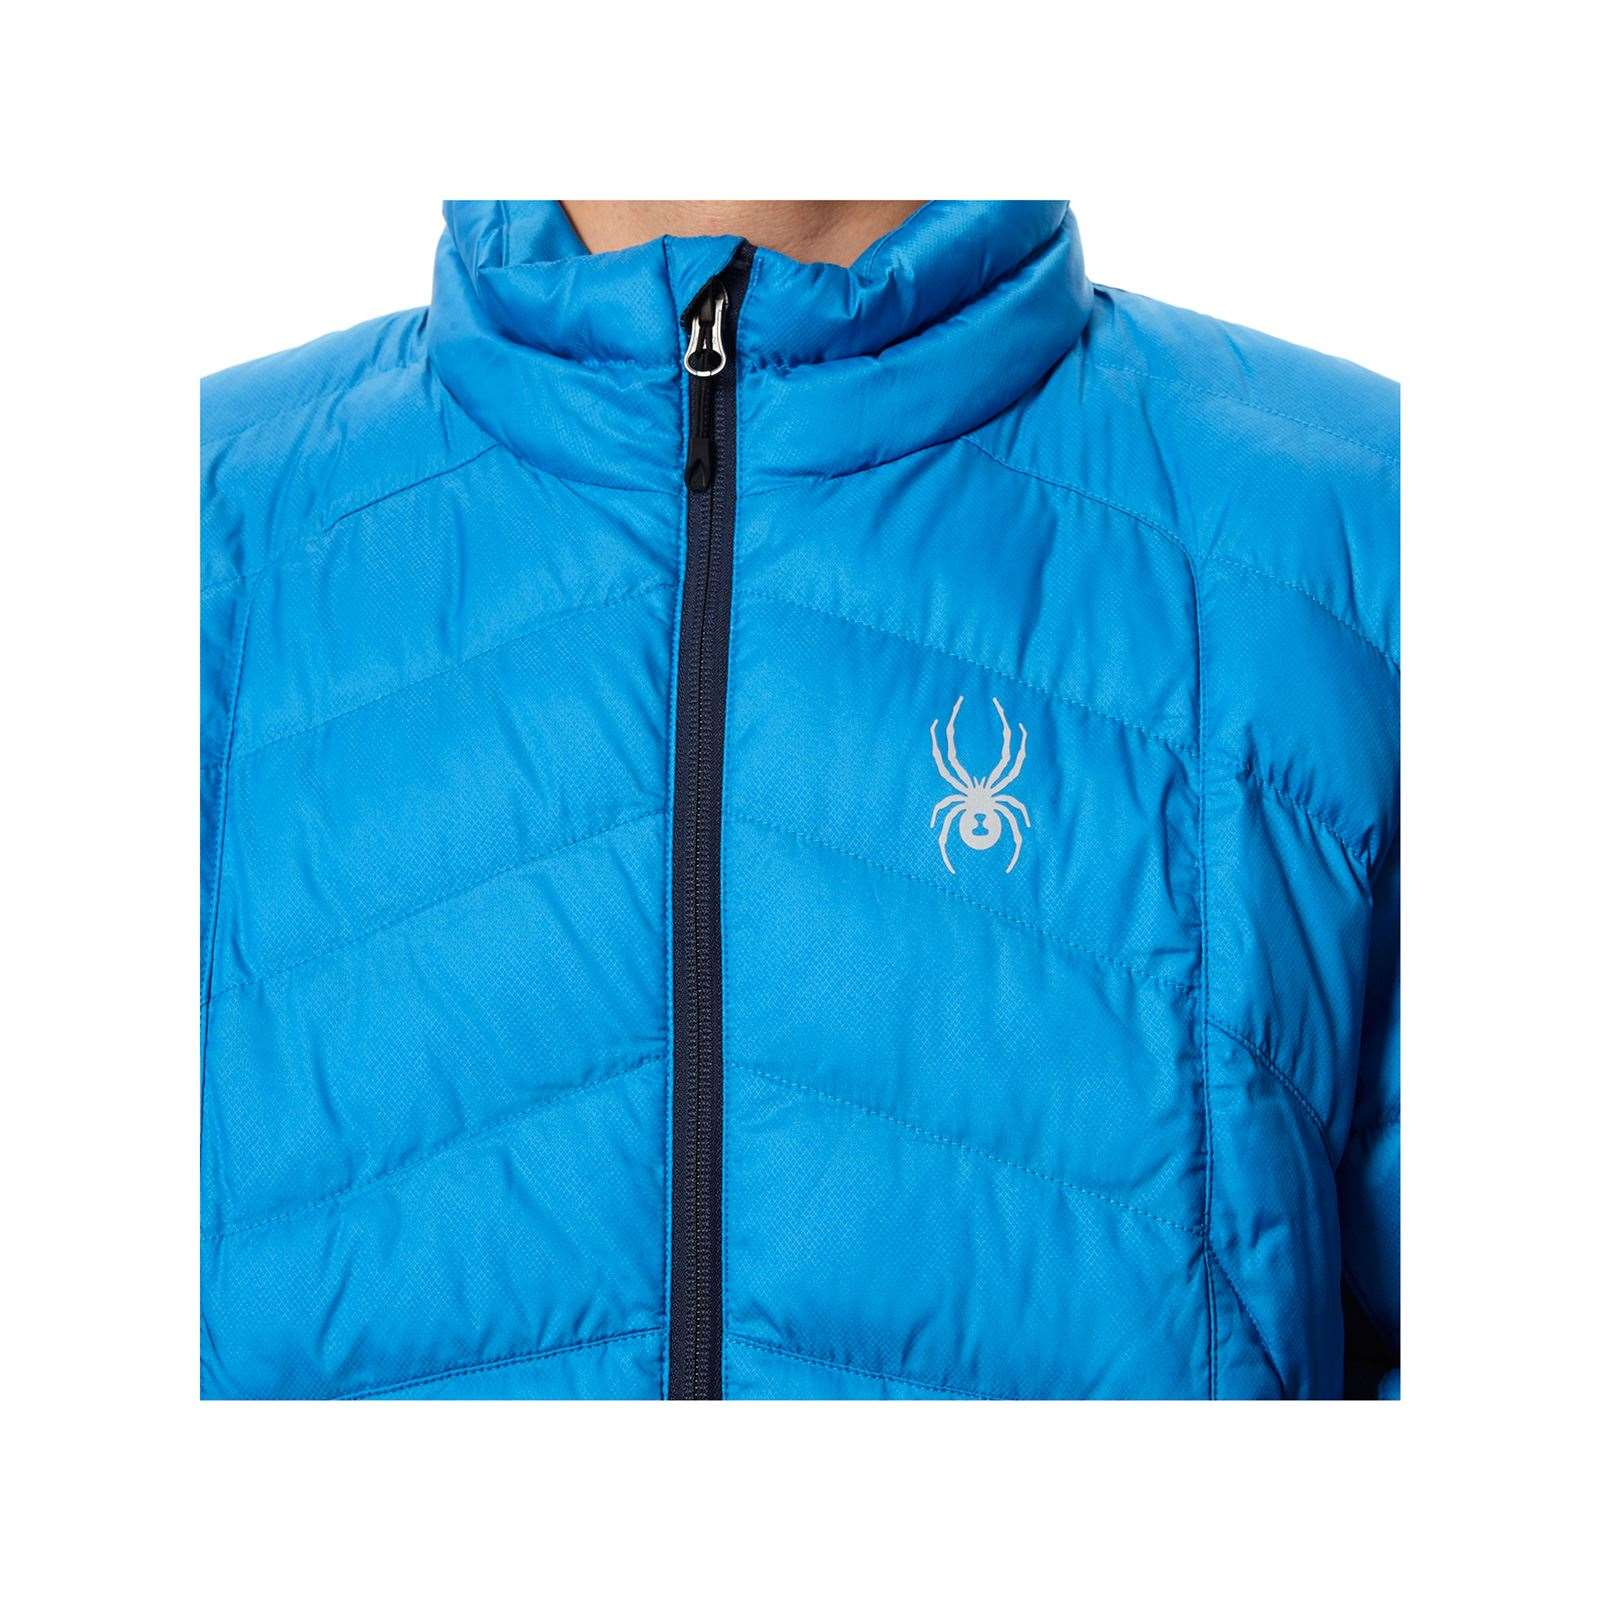 Geared Full Zip Daunenjacke blau